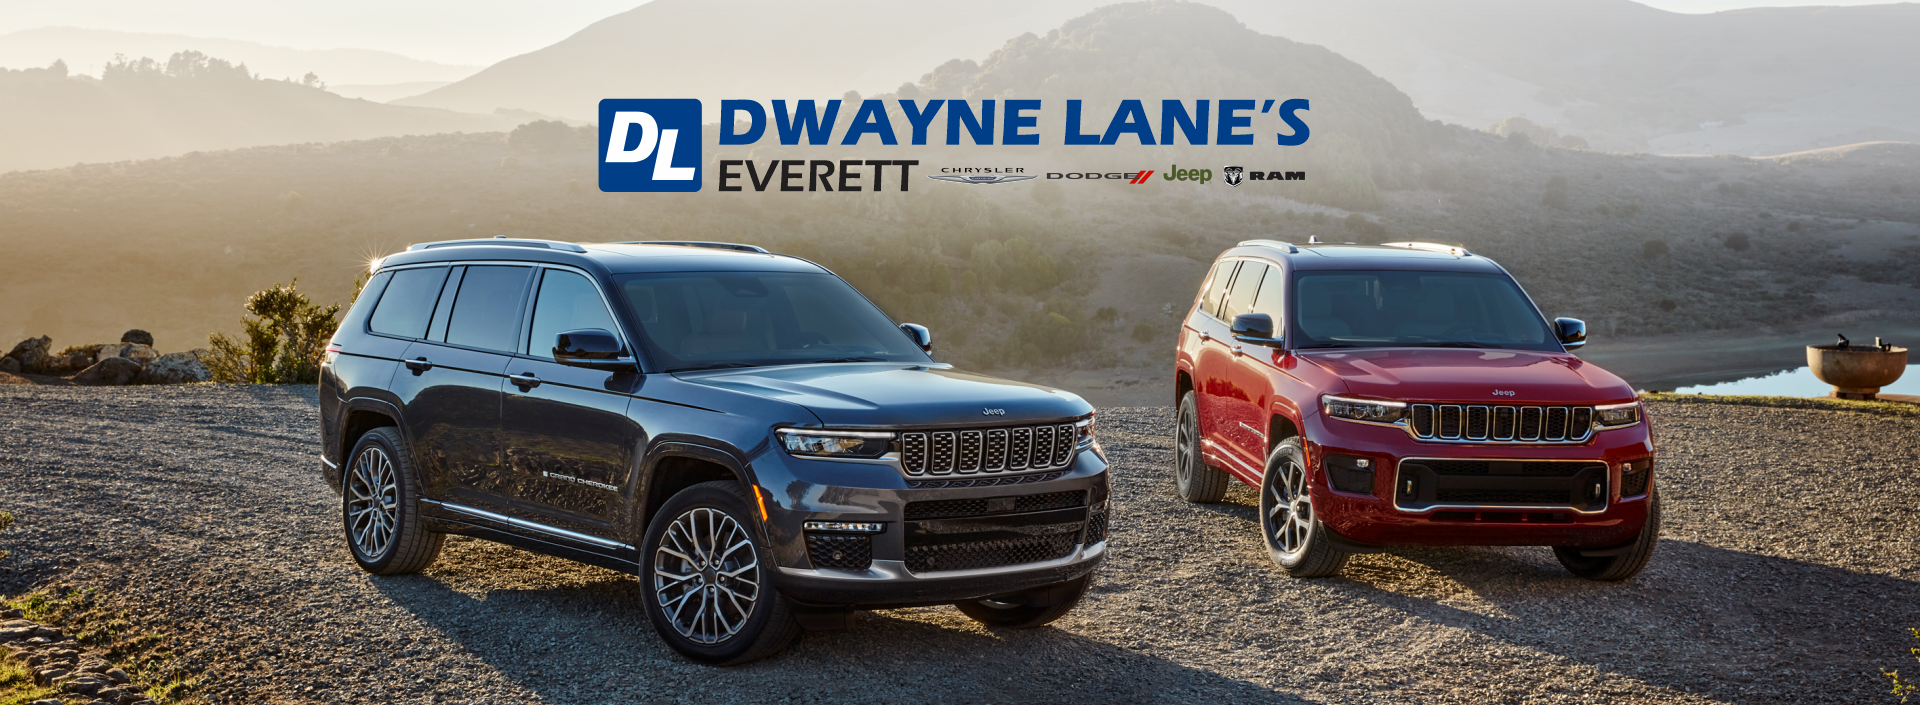 2021Generic-Group-Banners-Jeep